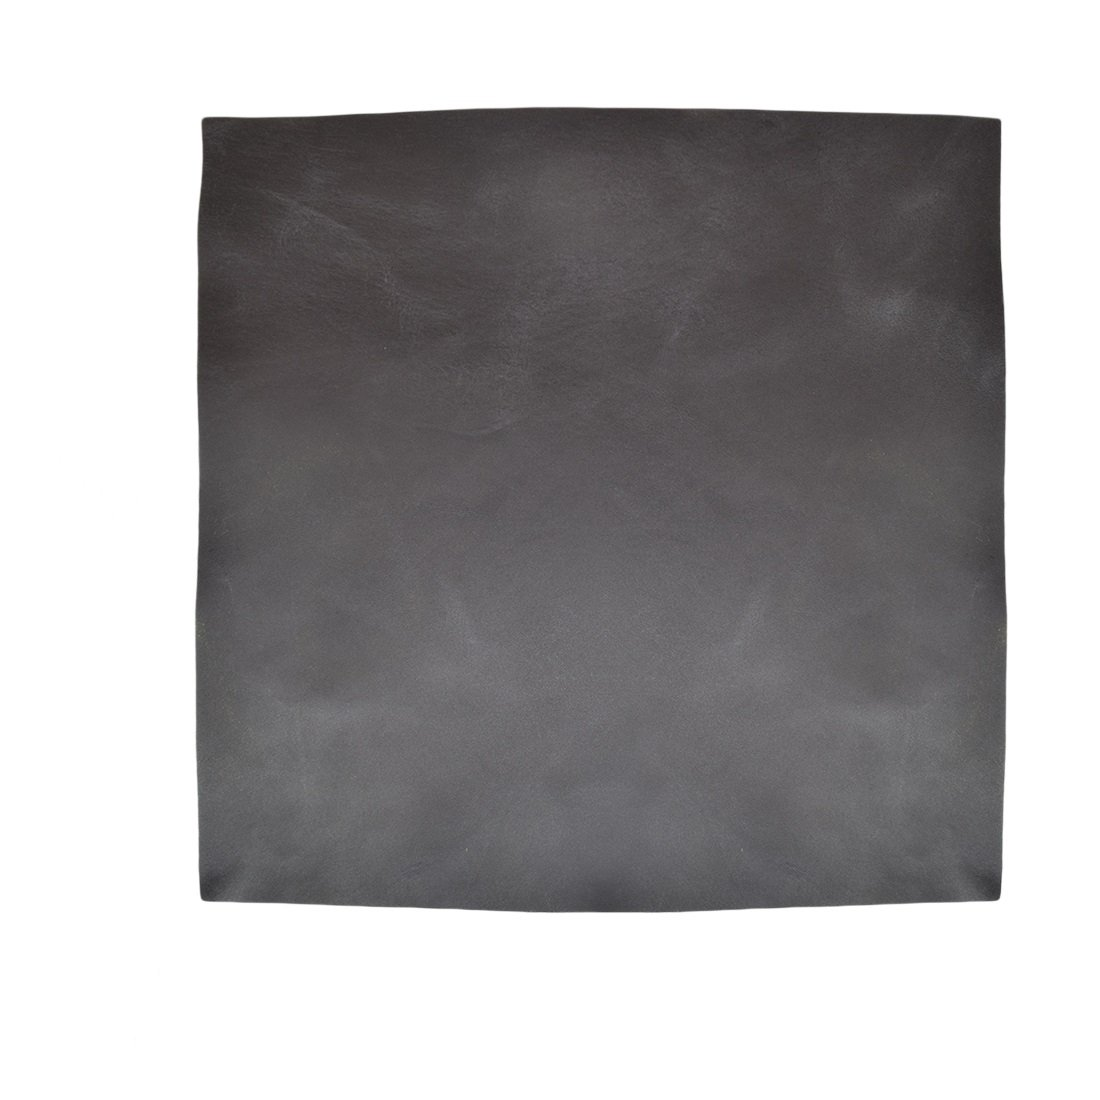 Leather Square (12x12) for Crafts/Tooling/Hobby Workshop, Medium Weight (1.8mm) by Hide & Drink :: Charcoal Black